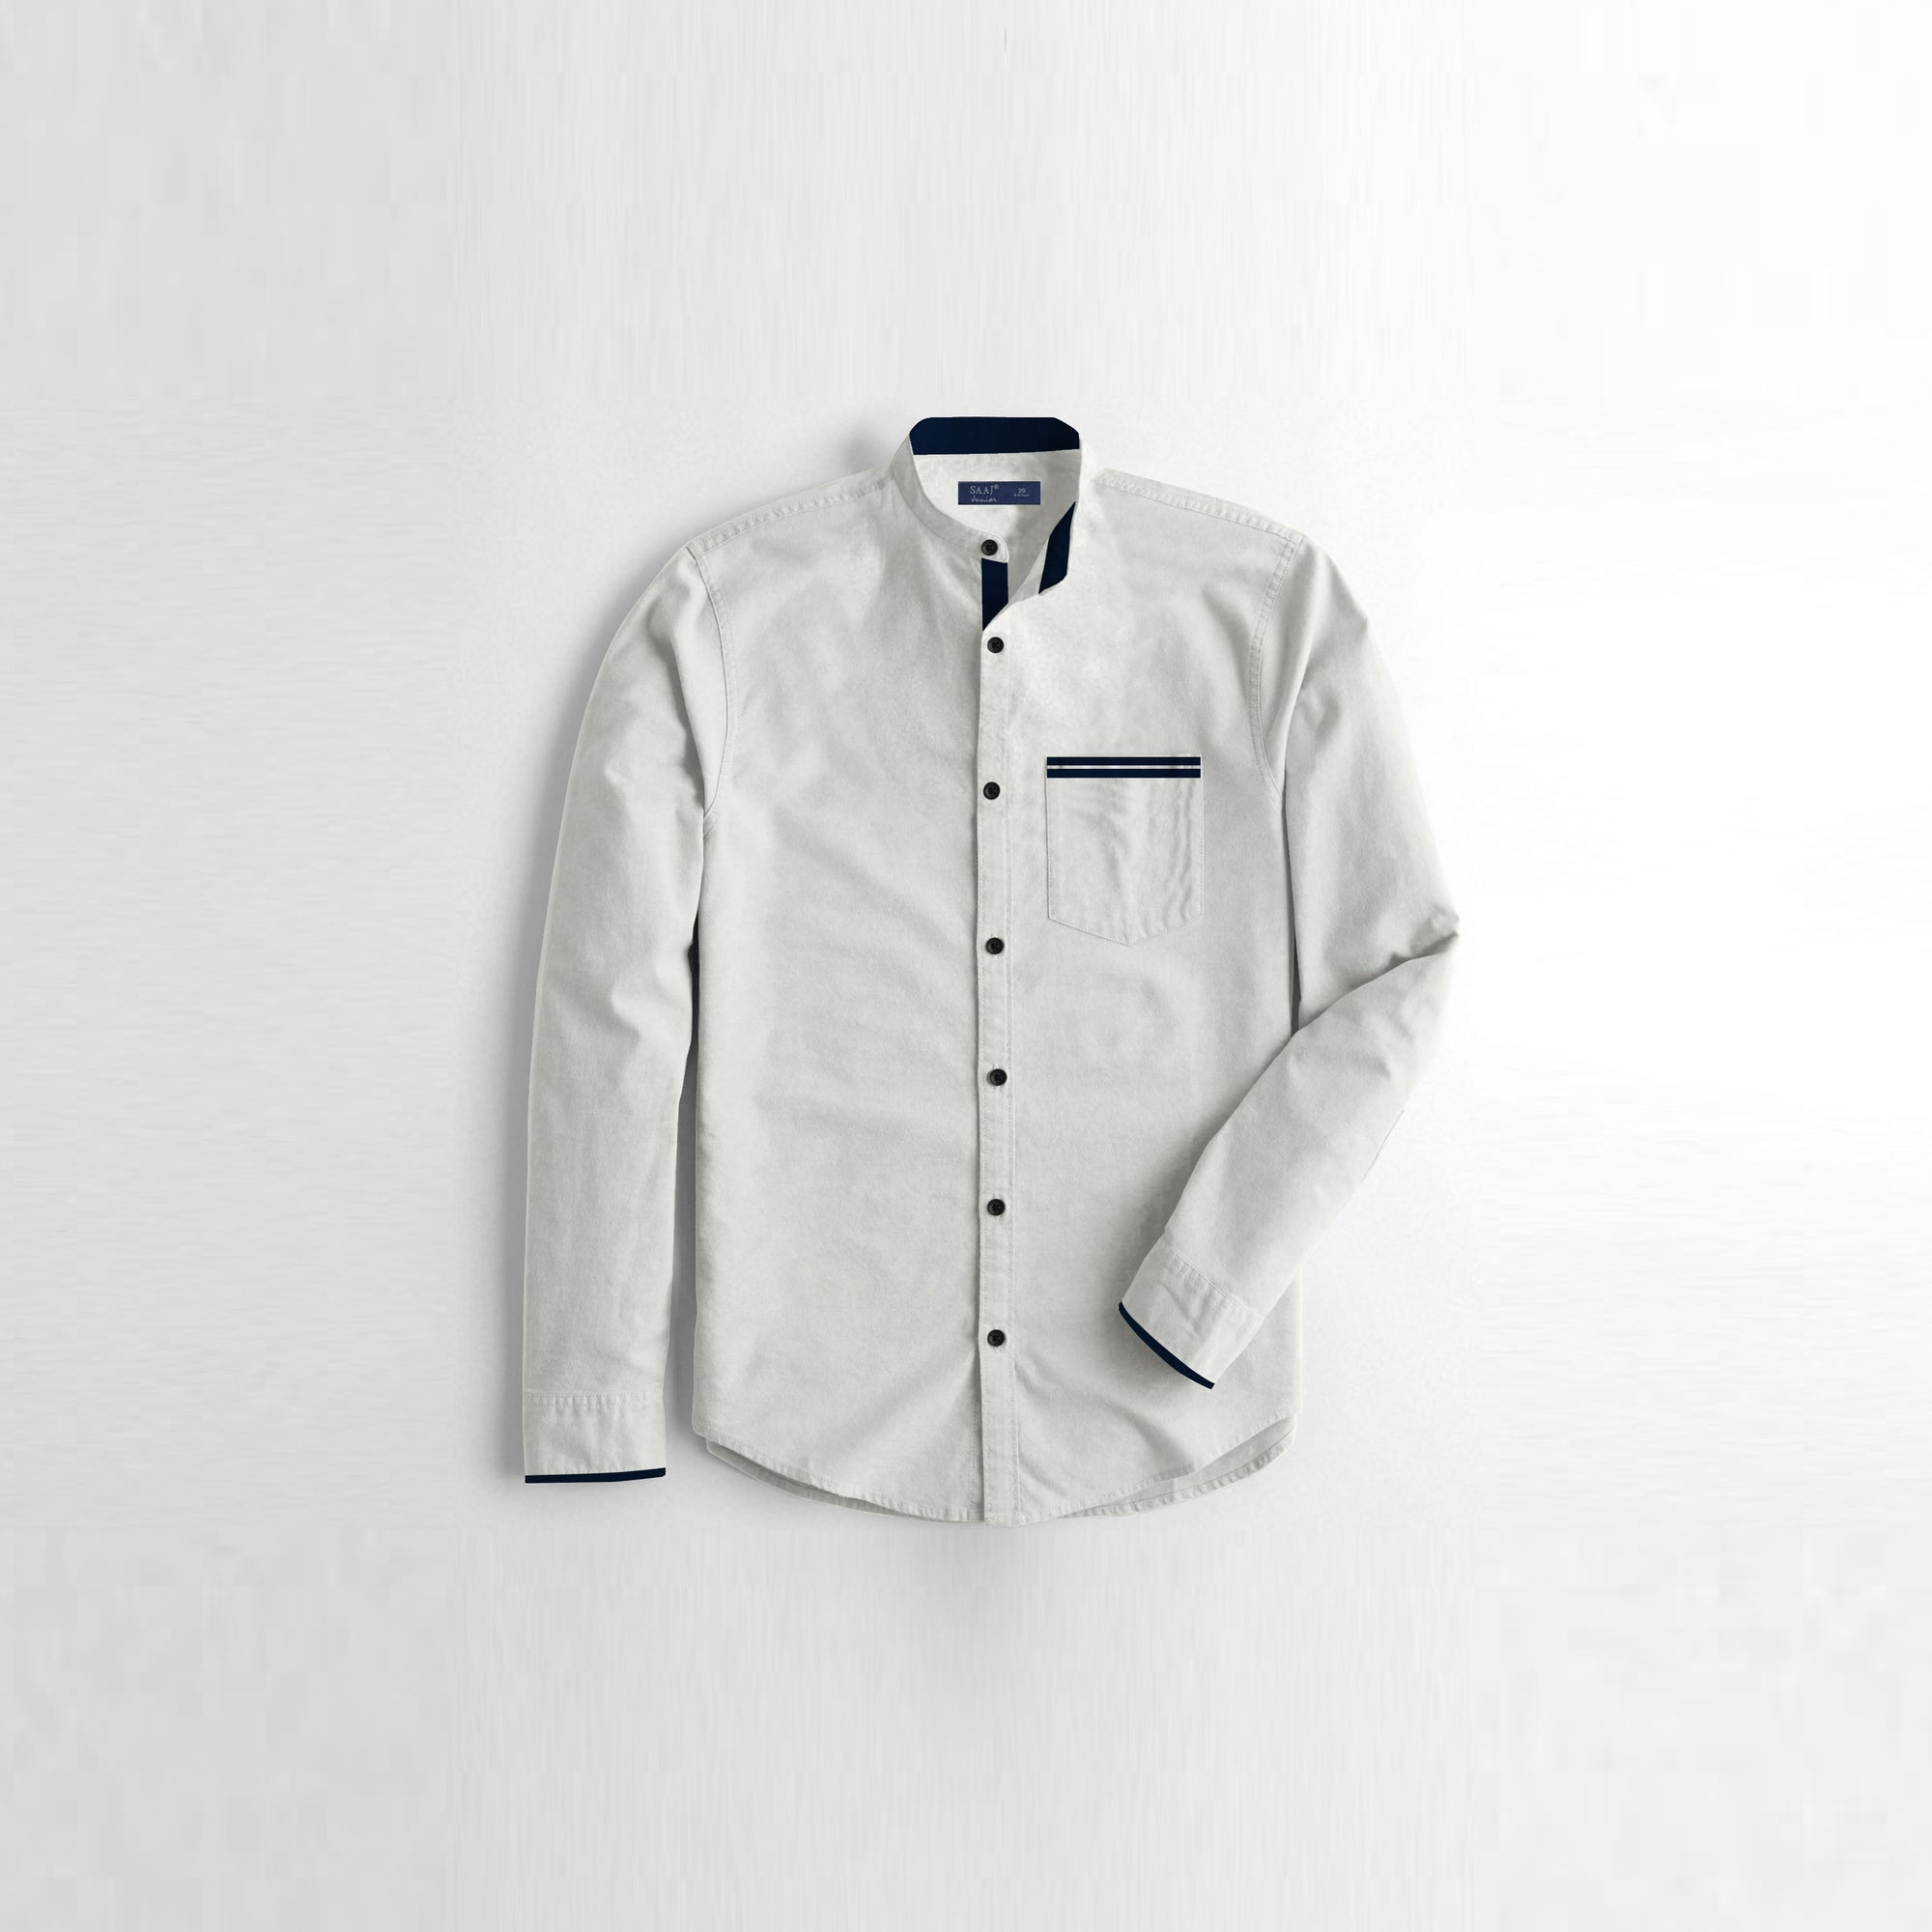 Junior Premium Slim Fit Casual Shirt For Boys-White-NA7968